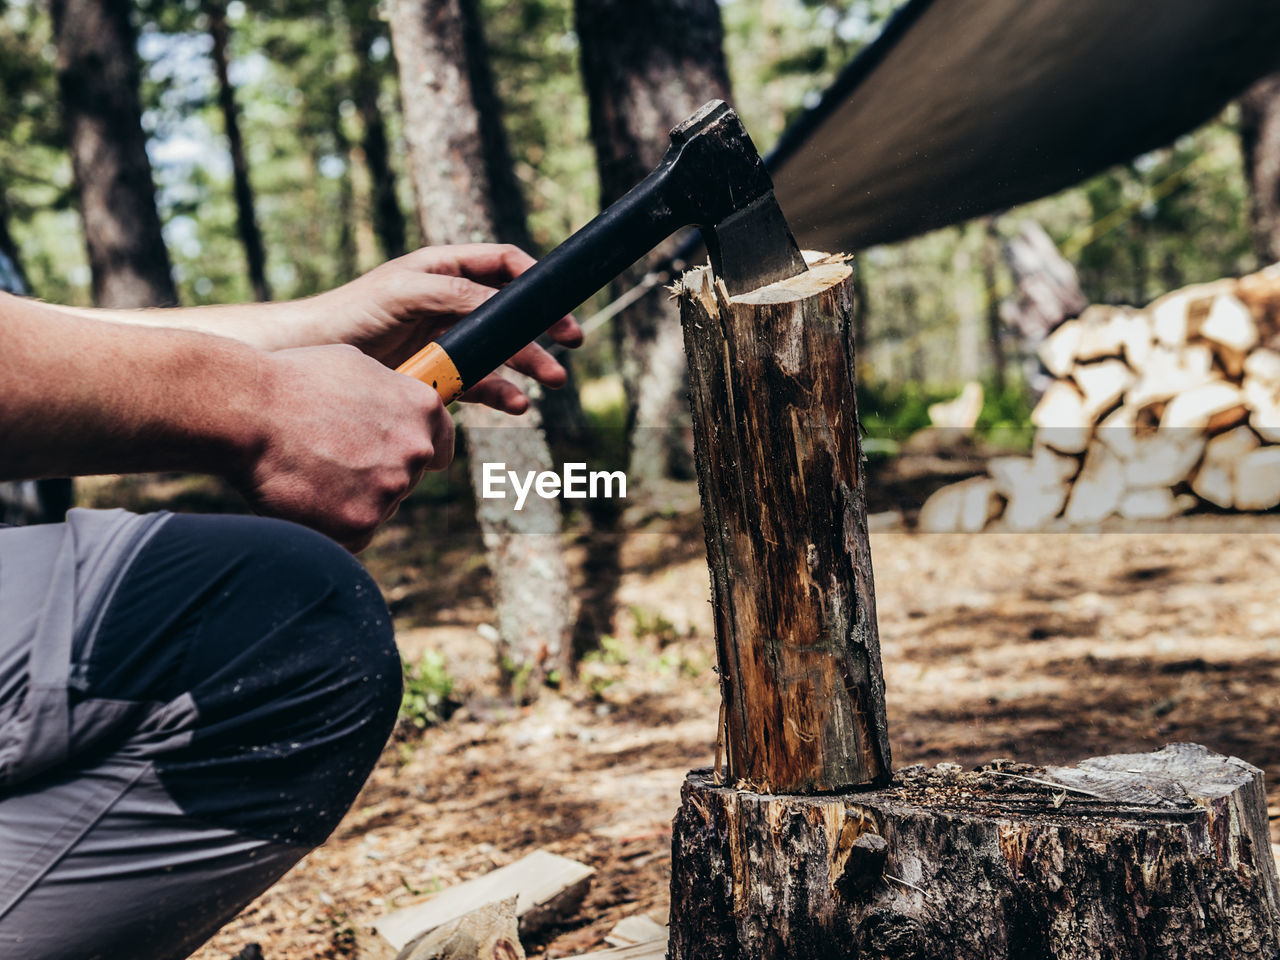 Midsection of man cutting wood in forest